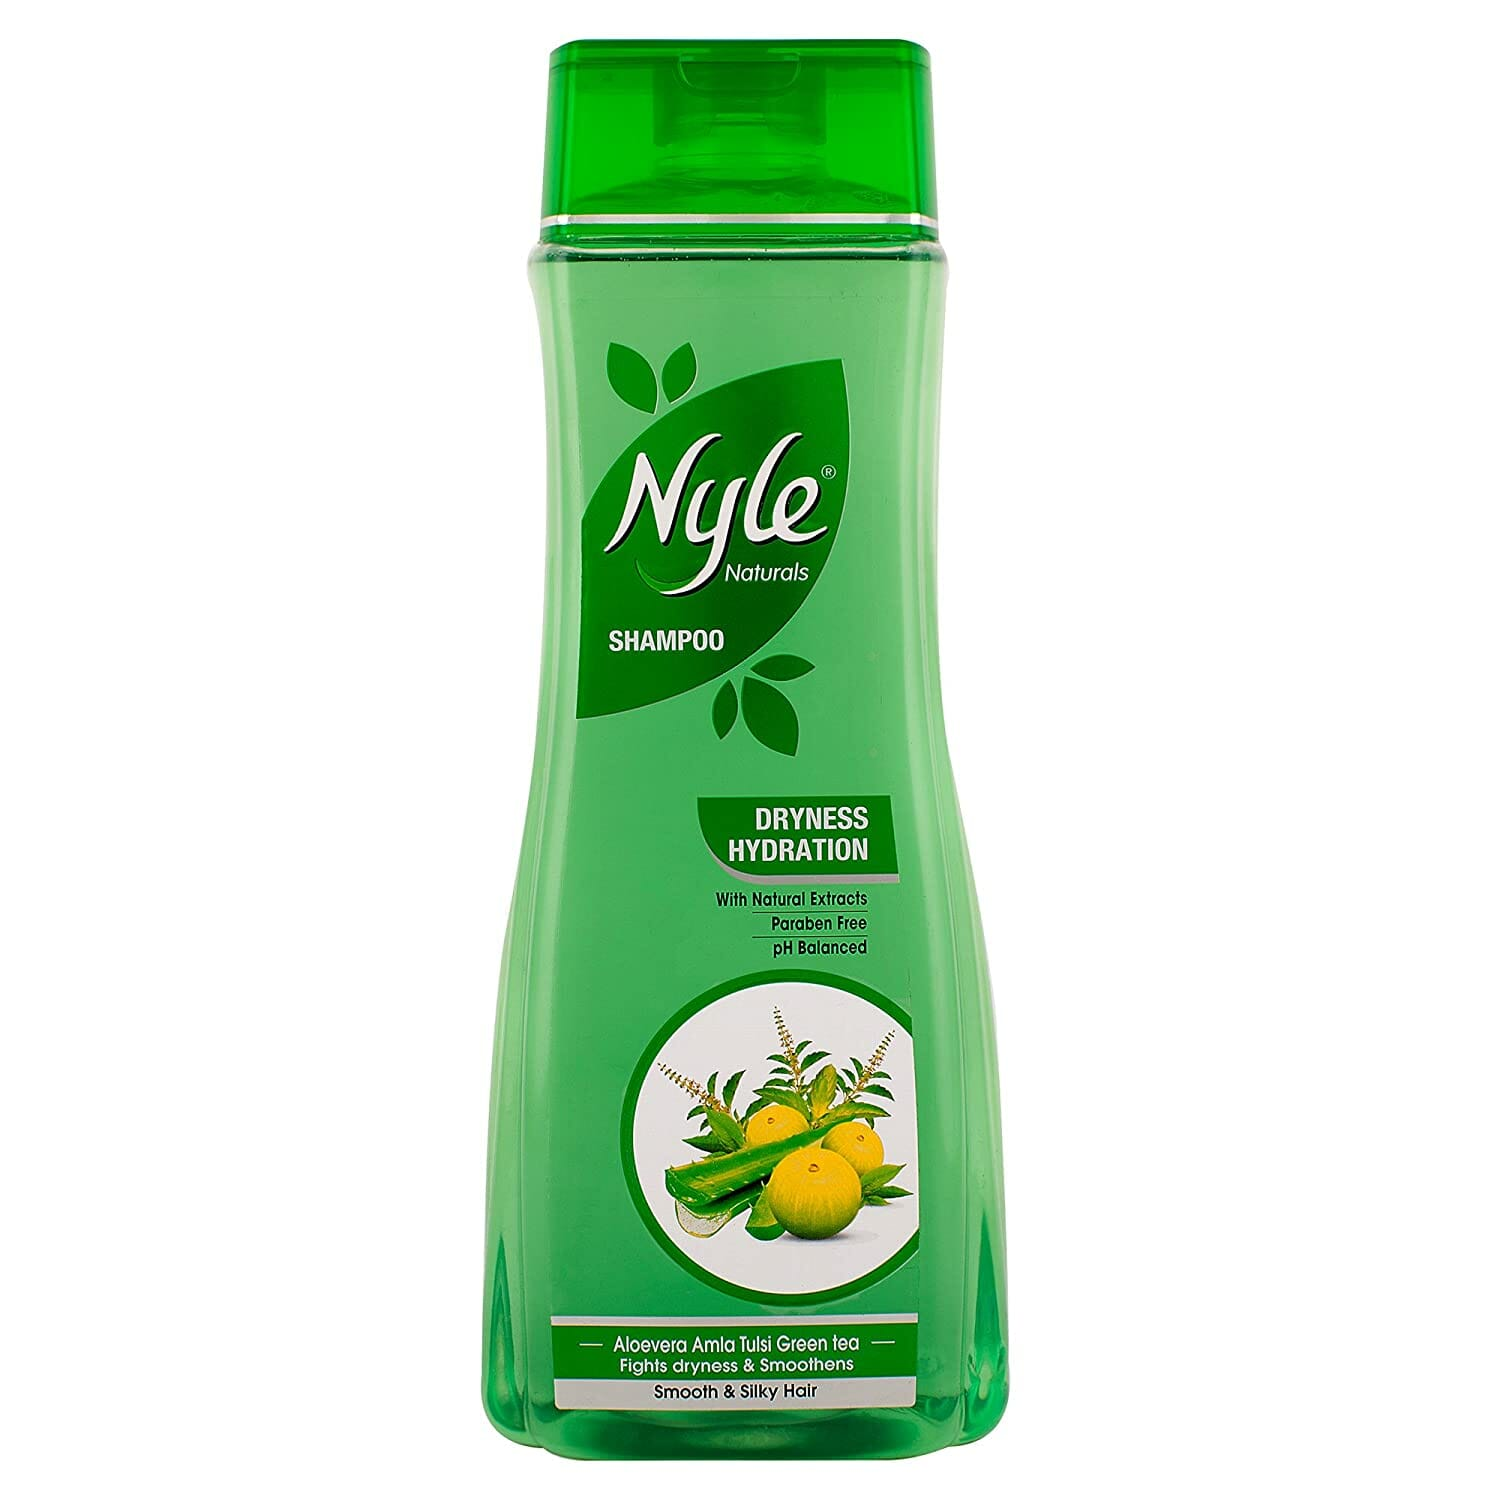 Nyle Naturals Shampoo Dryness Control - Best Shampoo For Dry Hair in Pakistan